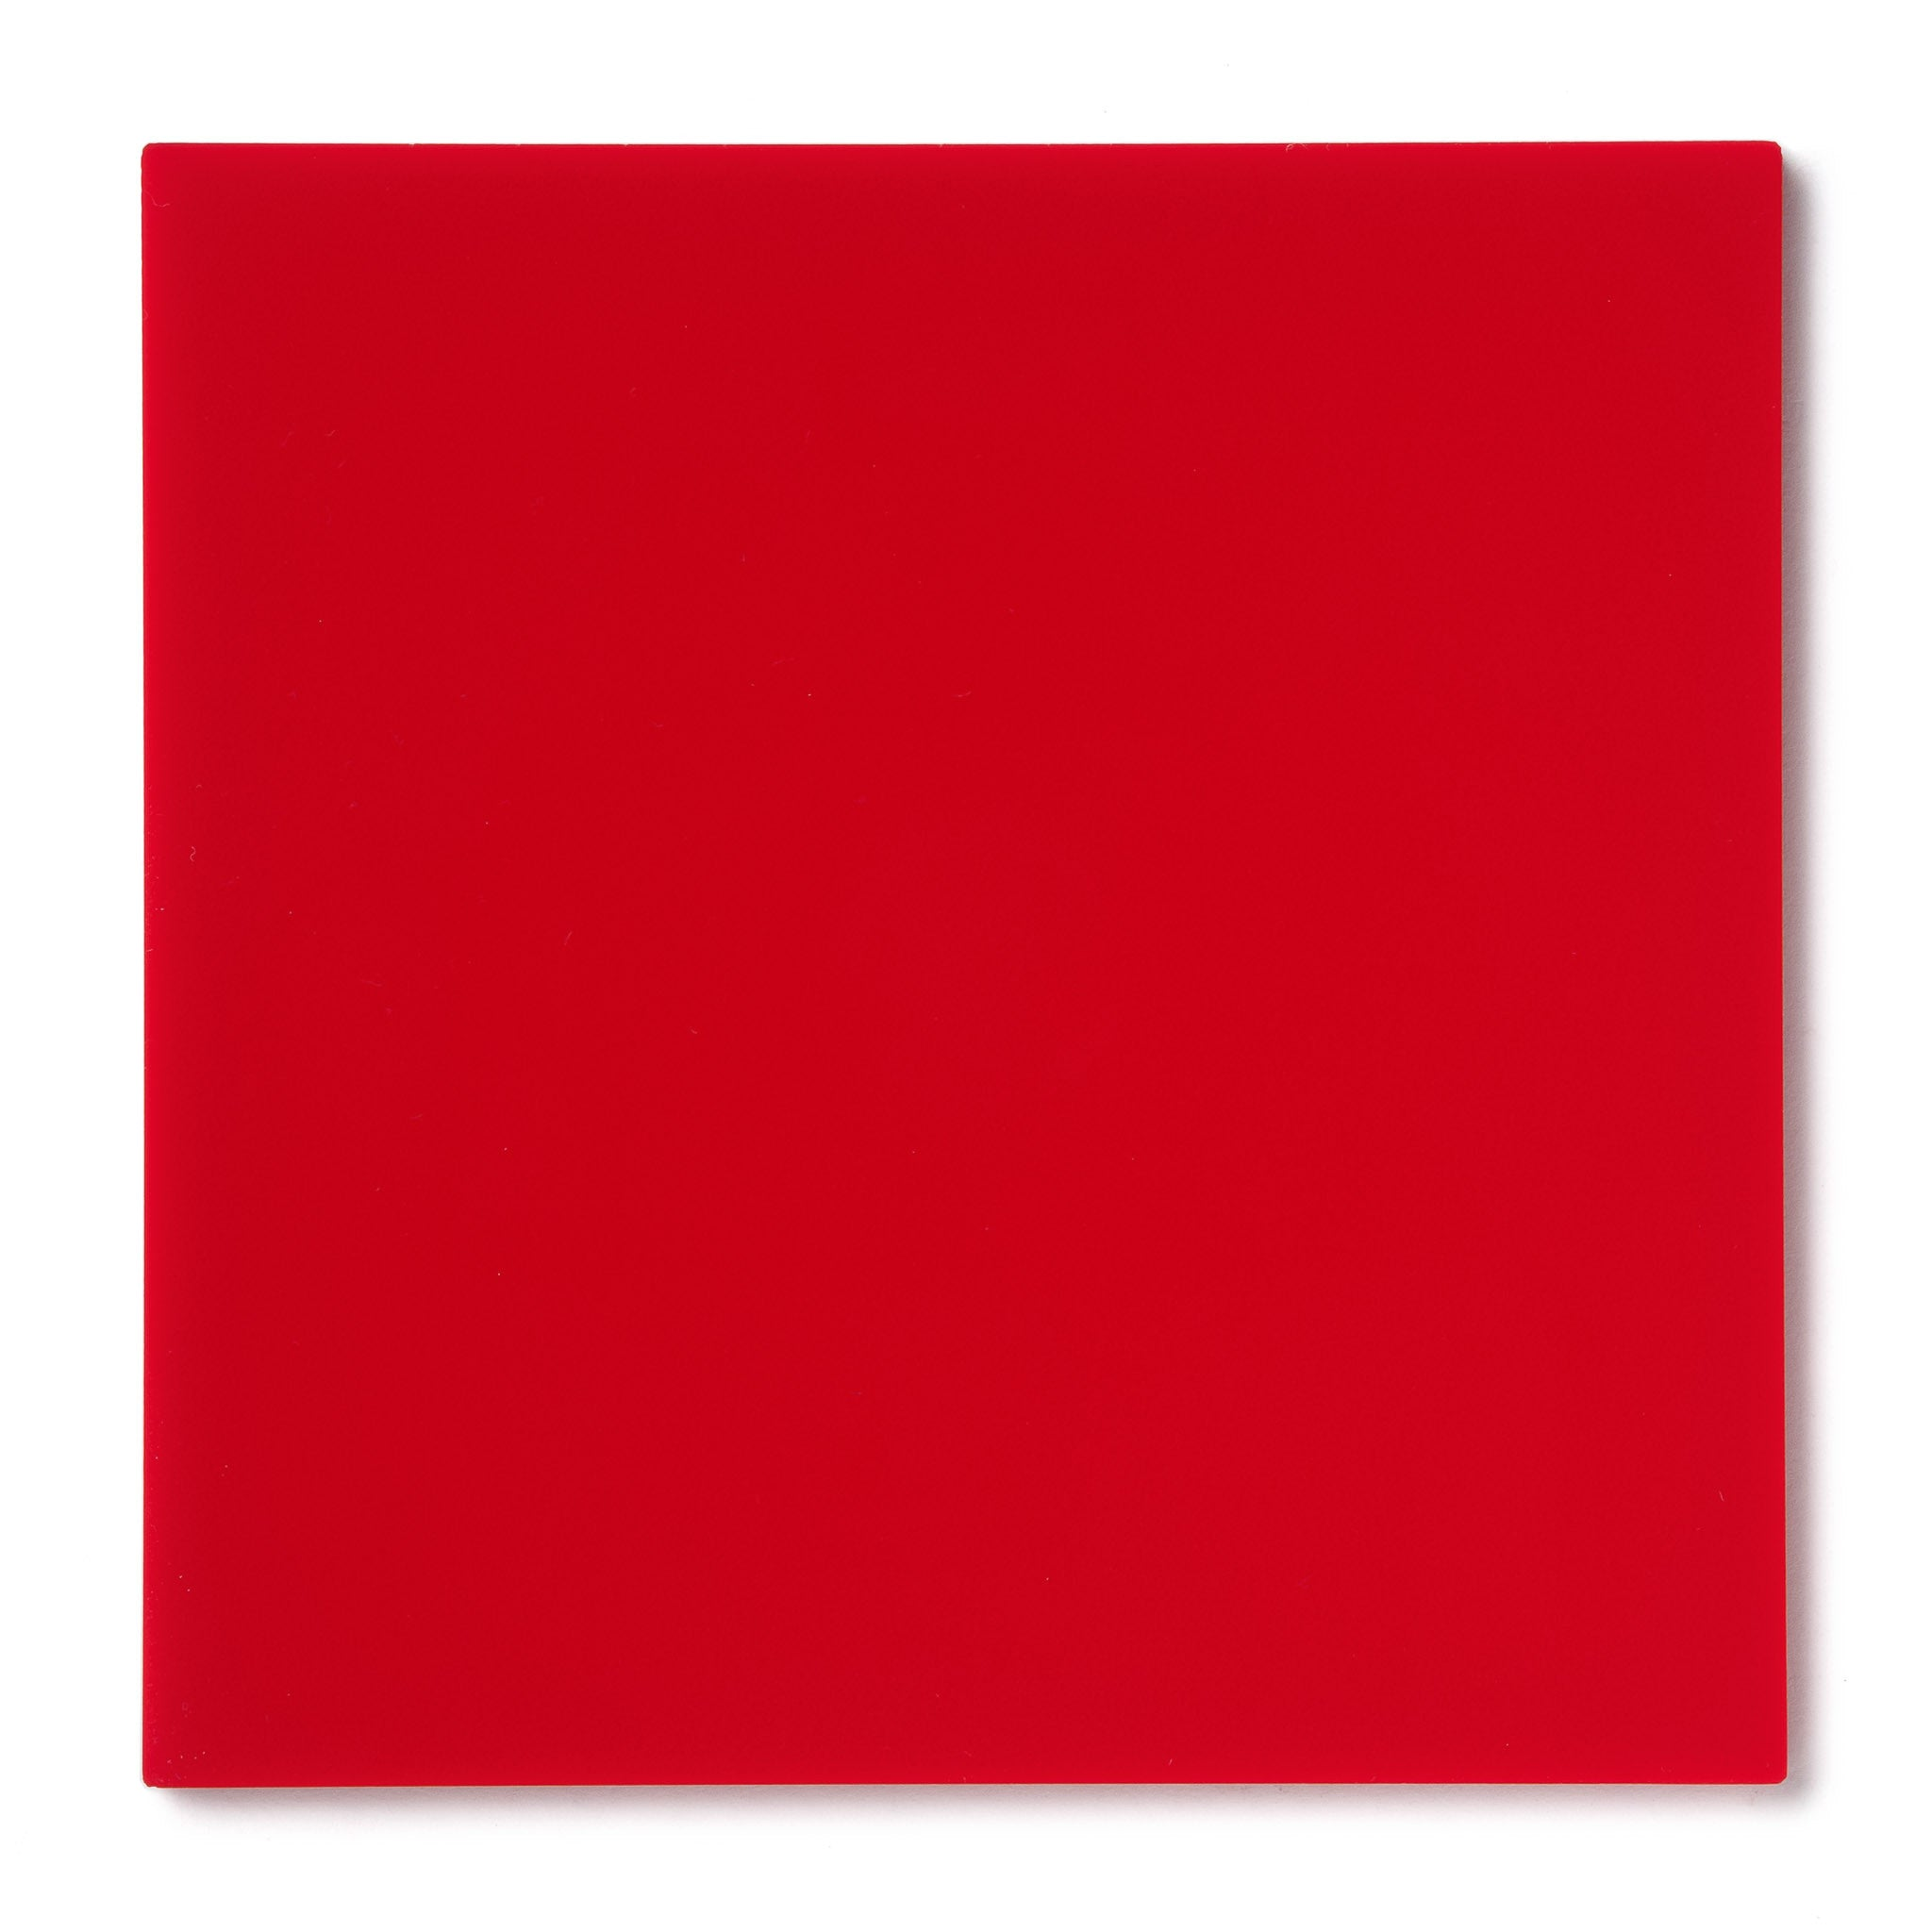 Red Opaque Acrylic Plexiglass Sheet, color 2157